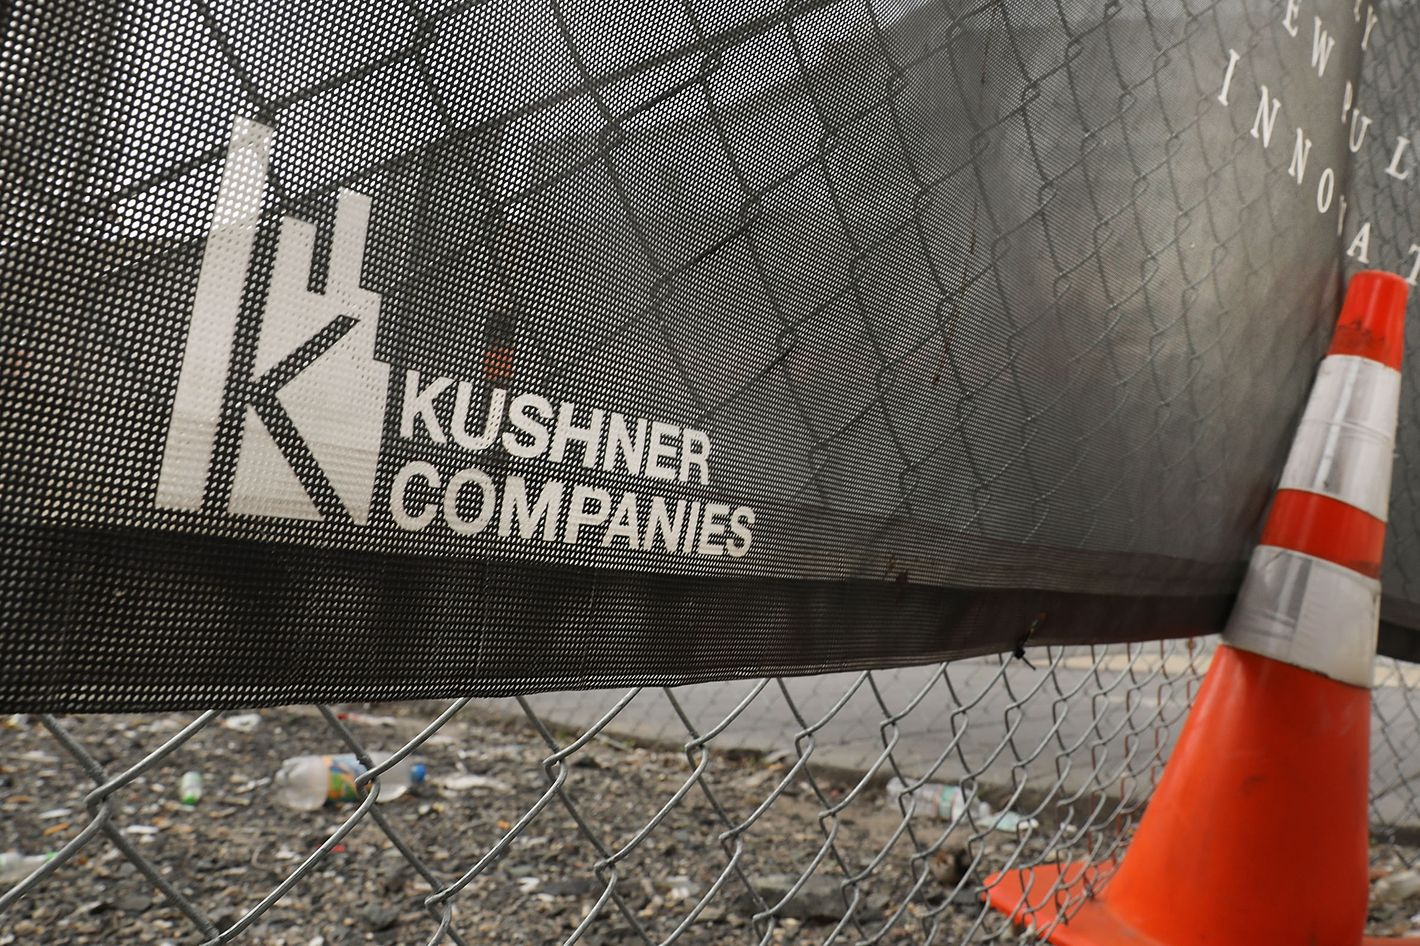 Kushner company regularly filed false work records